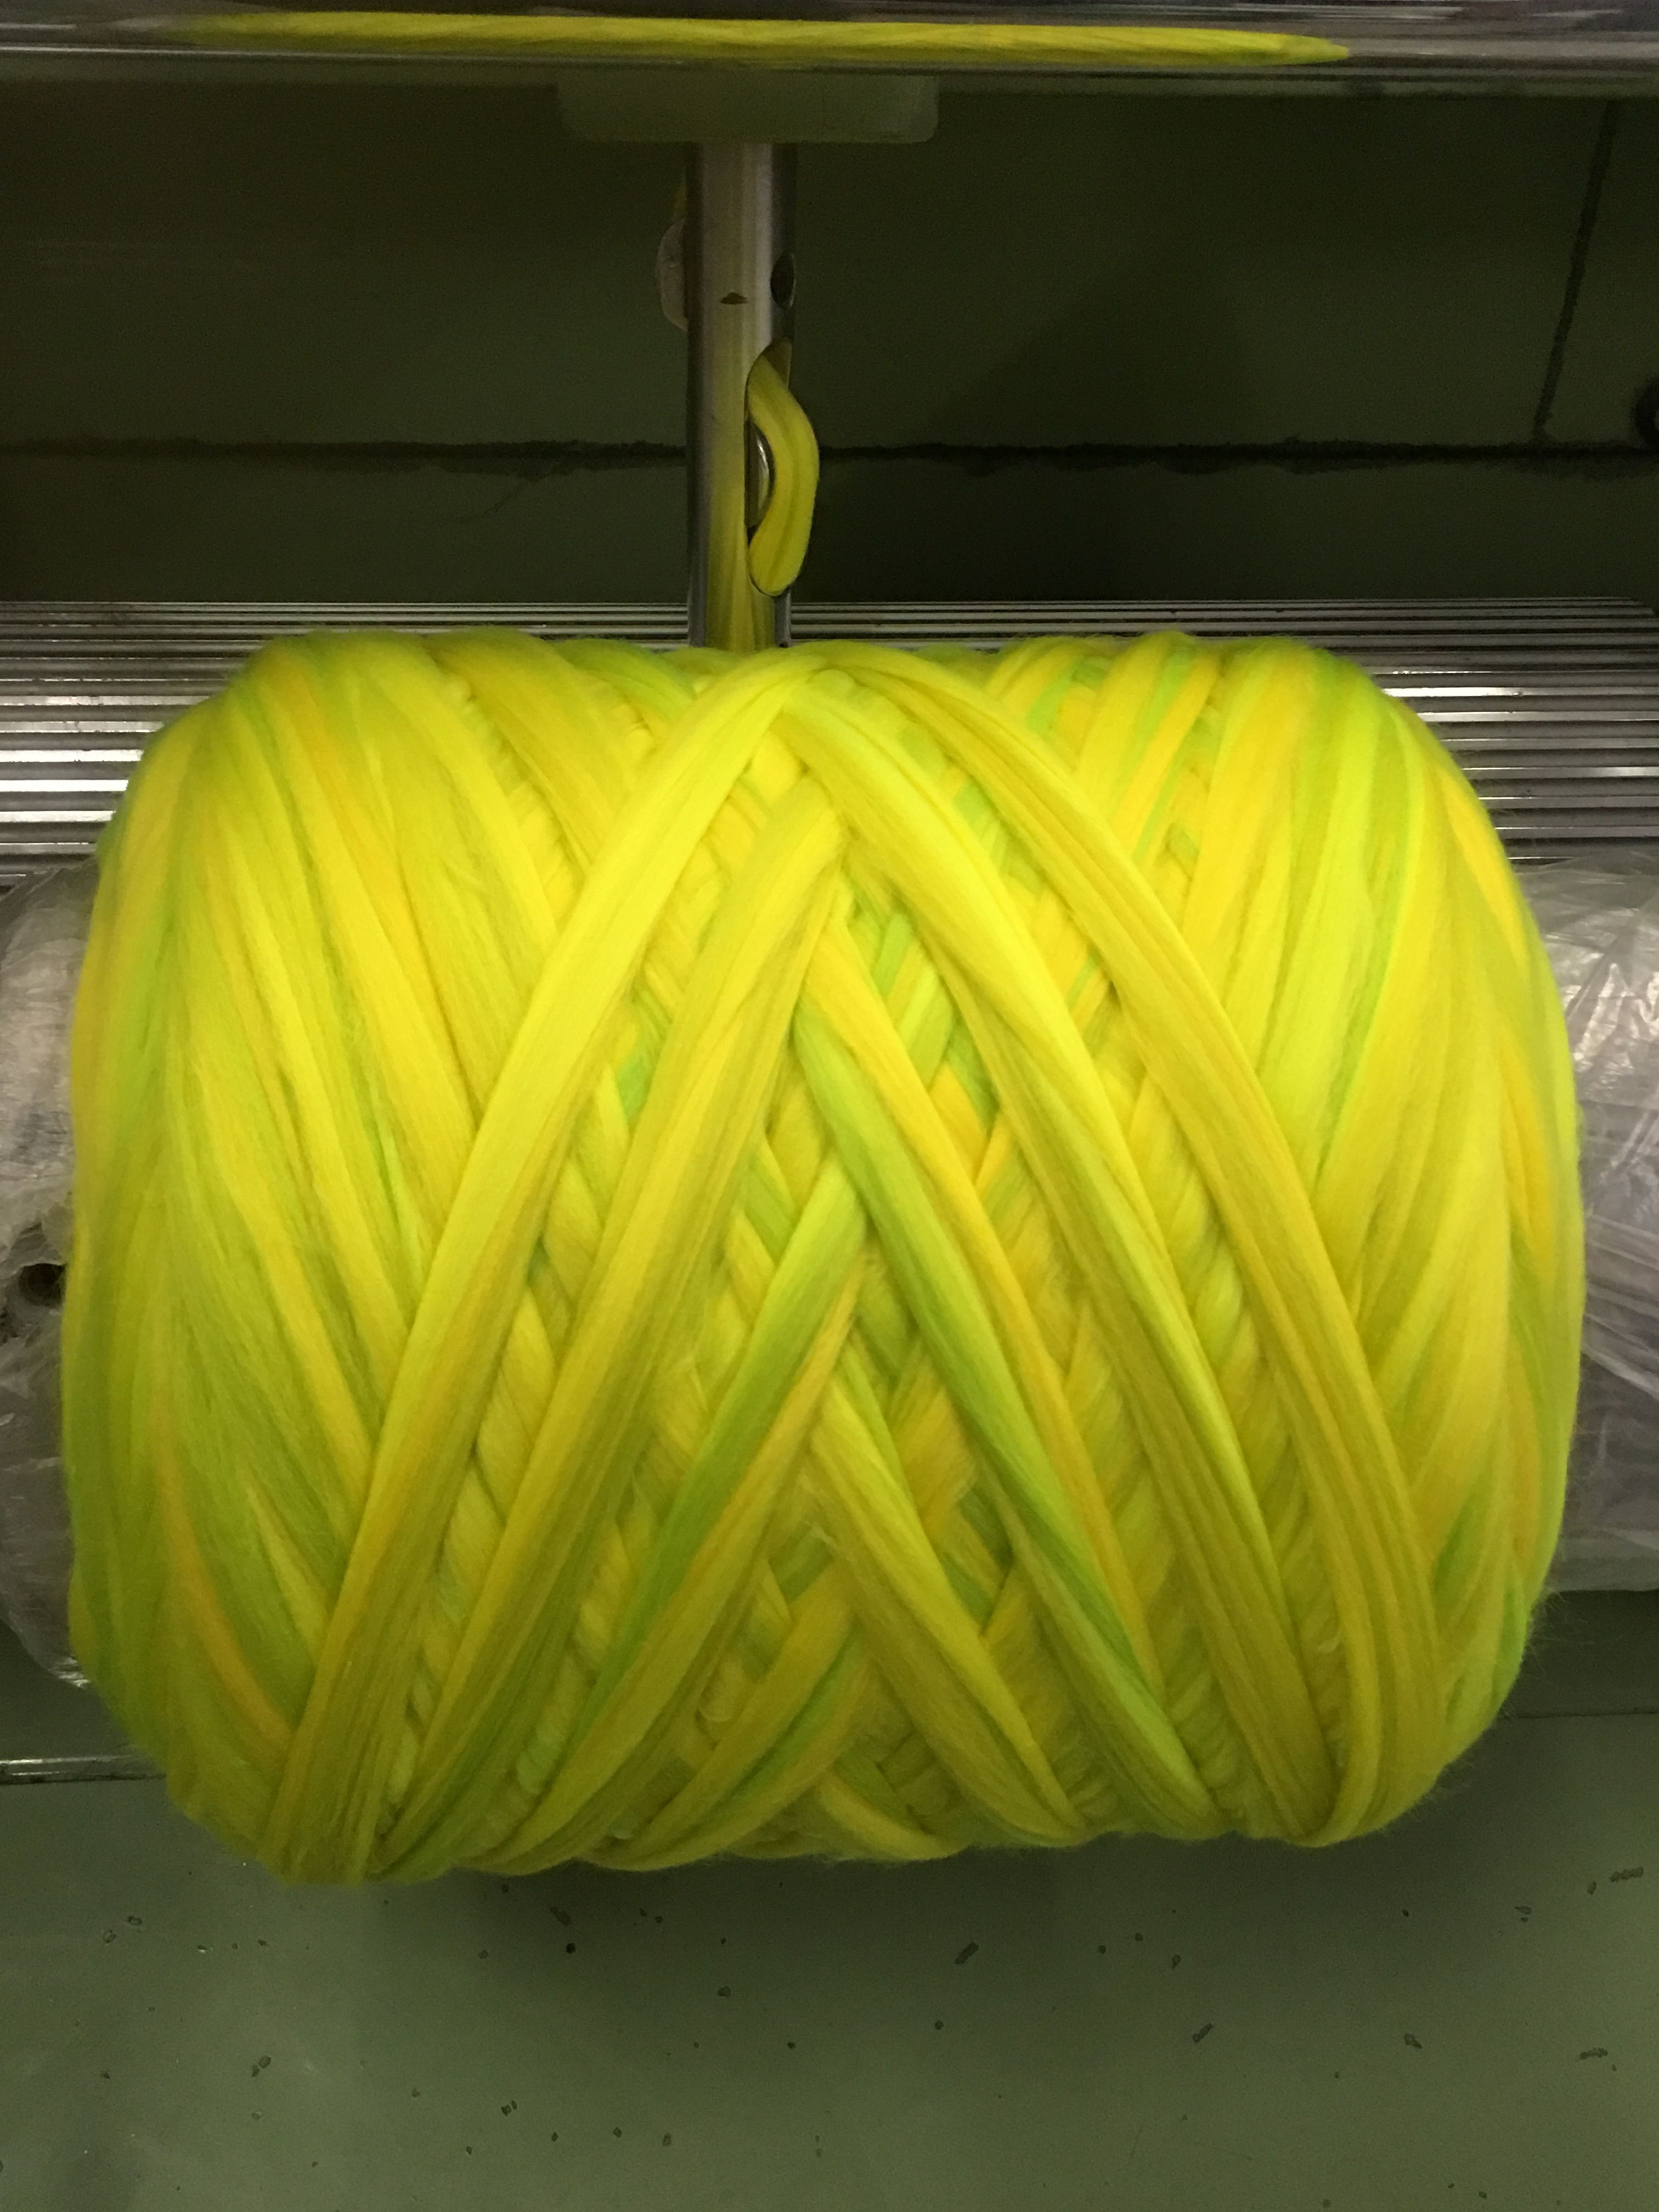 Neon melange shade being develop at the Michell Mill. Think Alpaca ... Think Michell